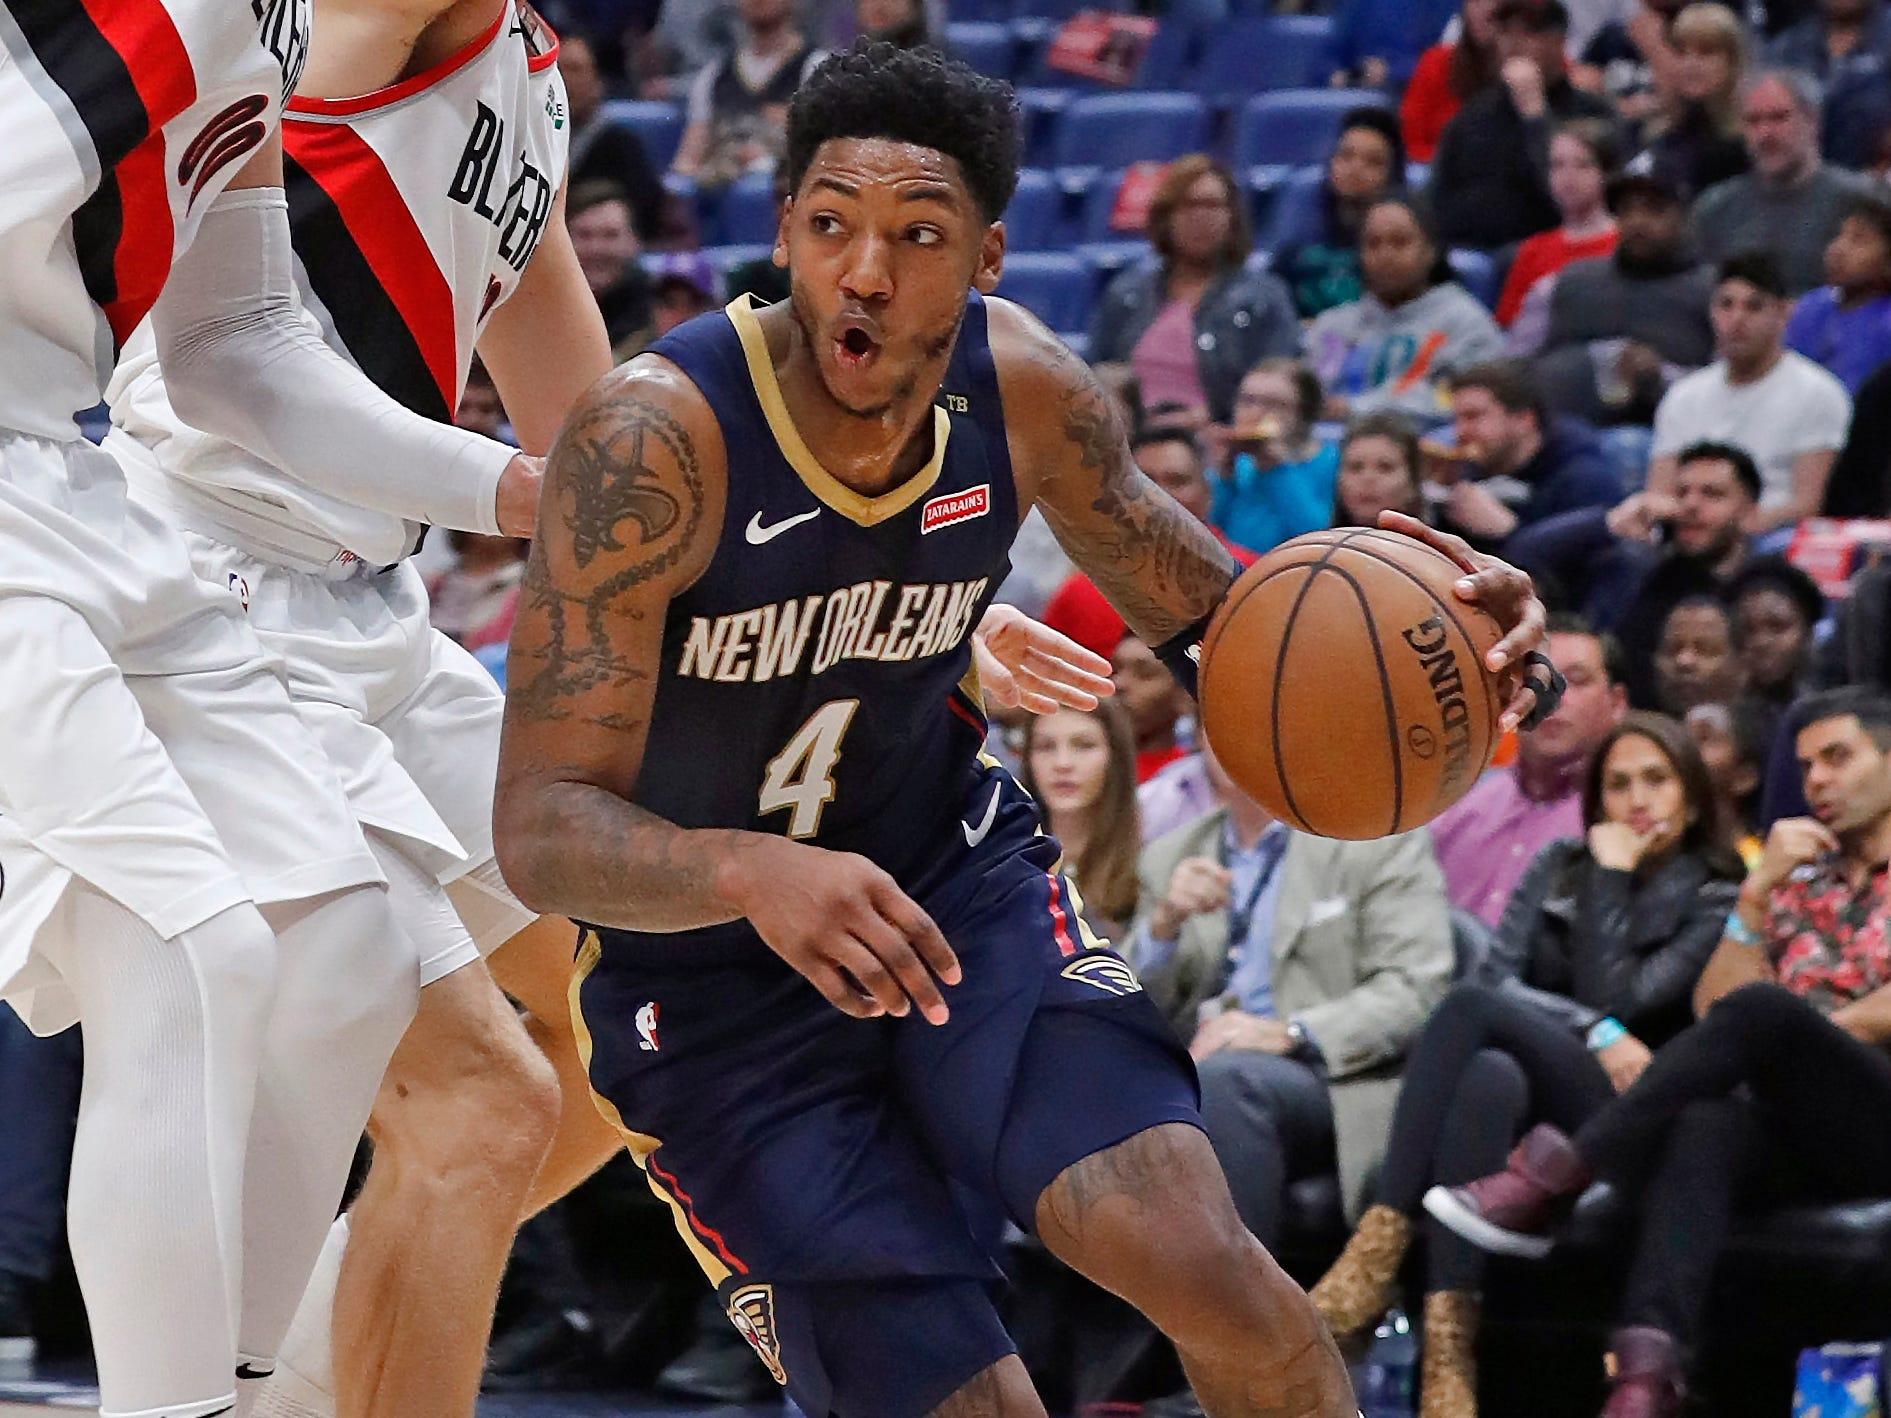 102. Elfrid Payton, Pelicans (March 15): 14 points, 16 assists, 12 rebound sin 122-110 loss to Trail Blazers (fourth of season).